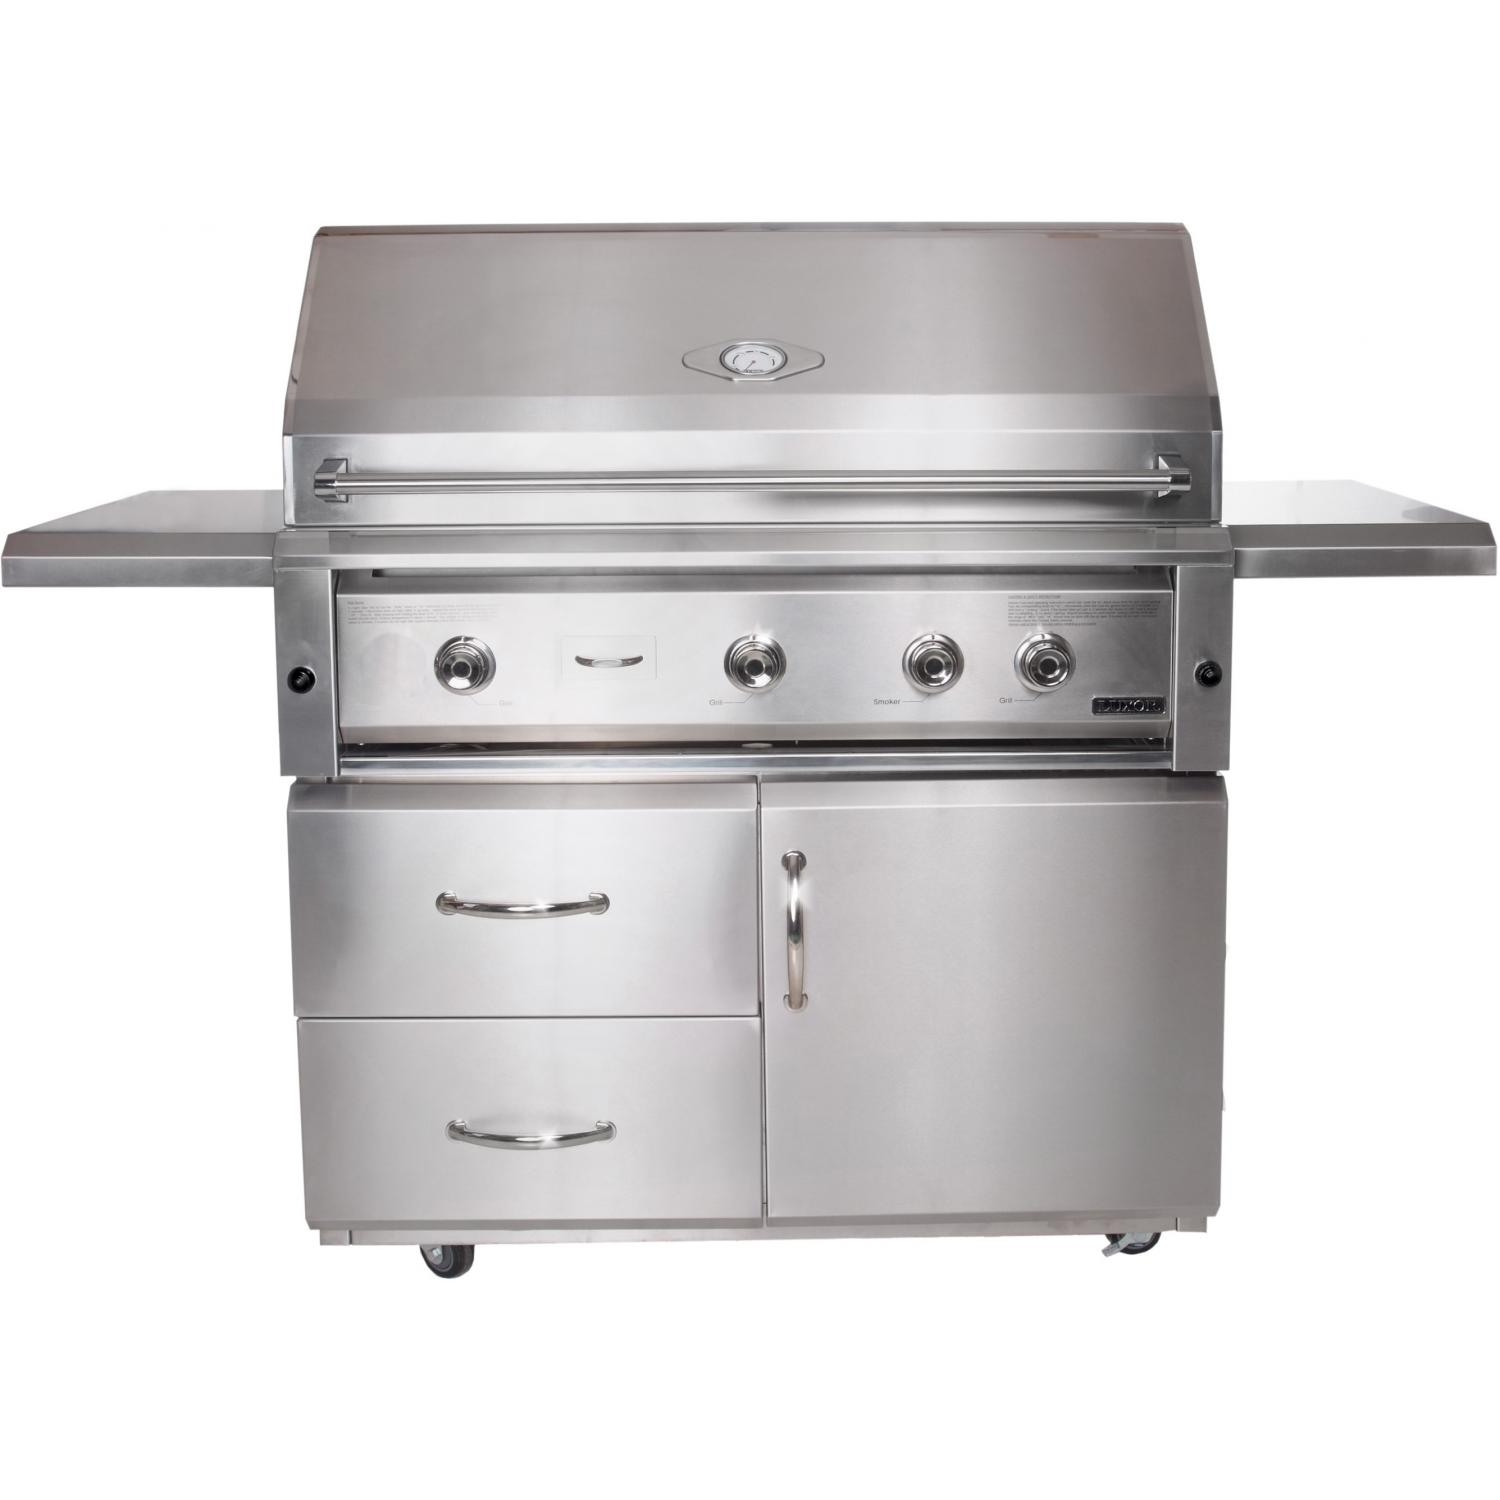 Luxor Gas Grills 42 Inch All Infrared Propane Gas Grill On Cart AHT-42F-LP